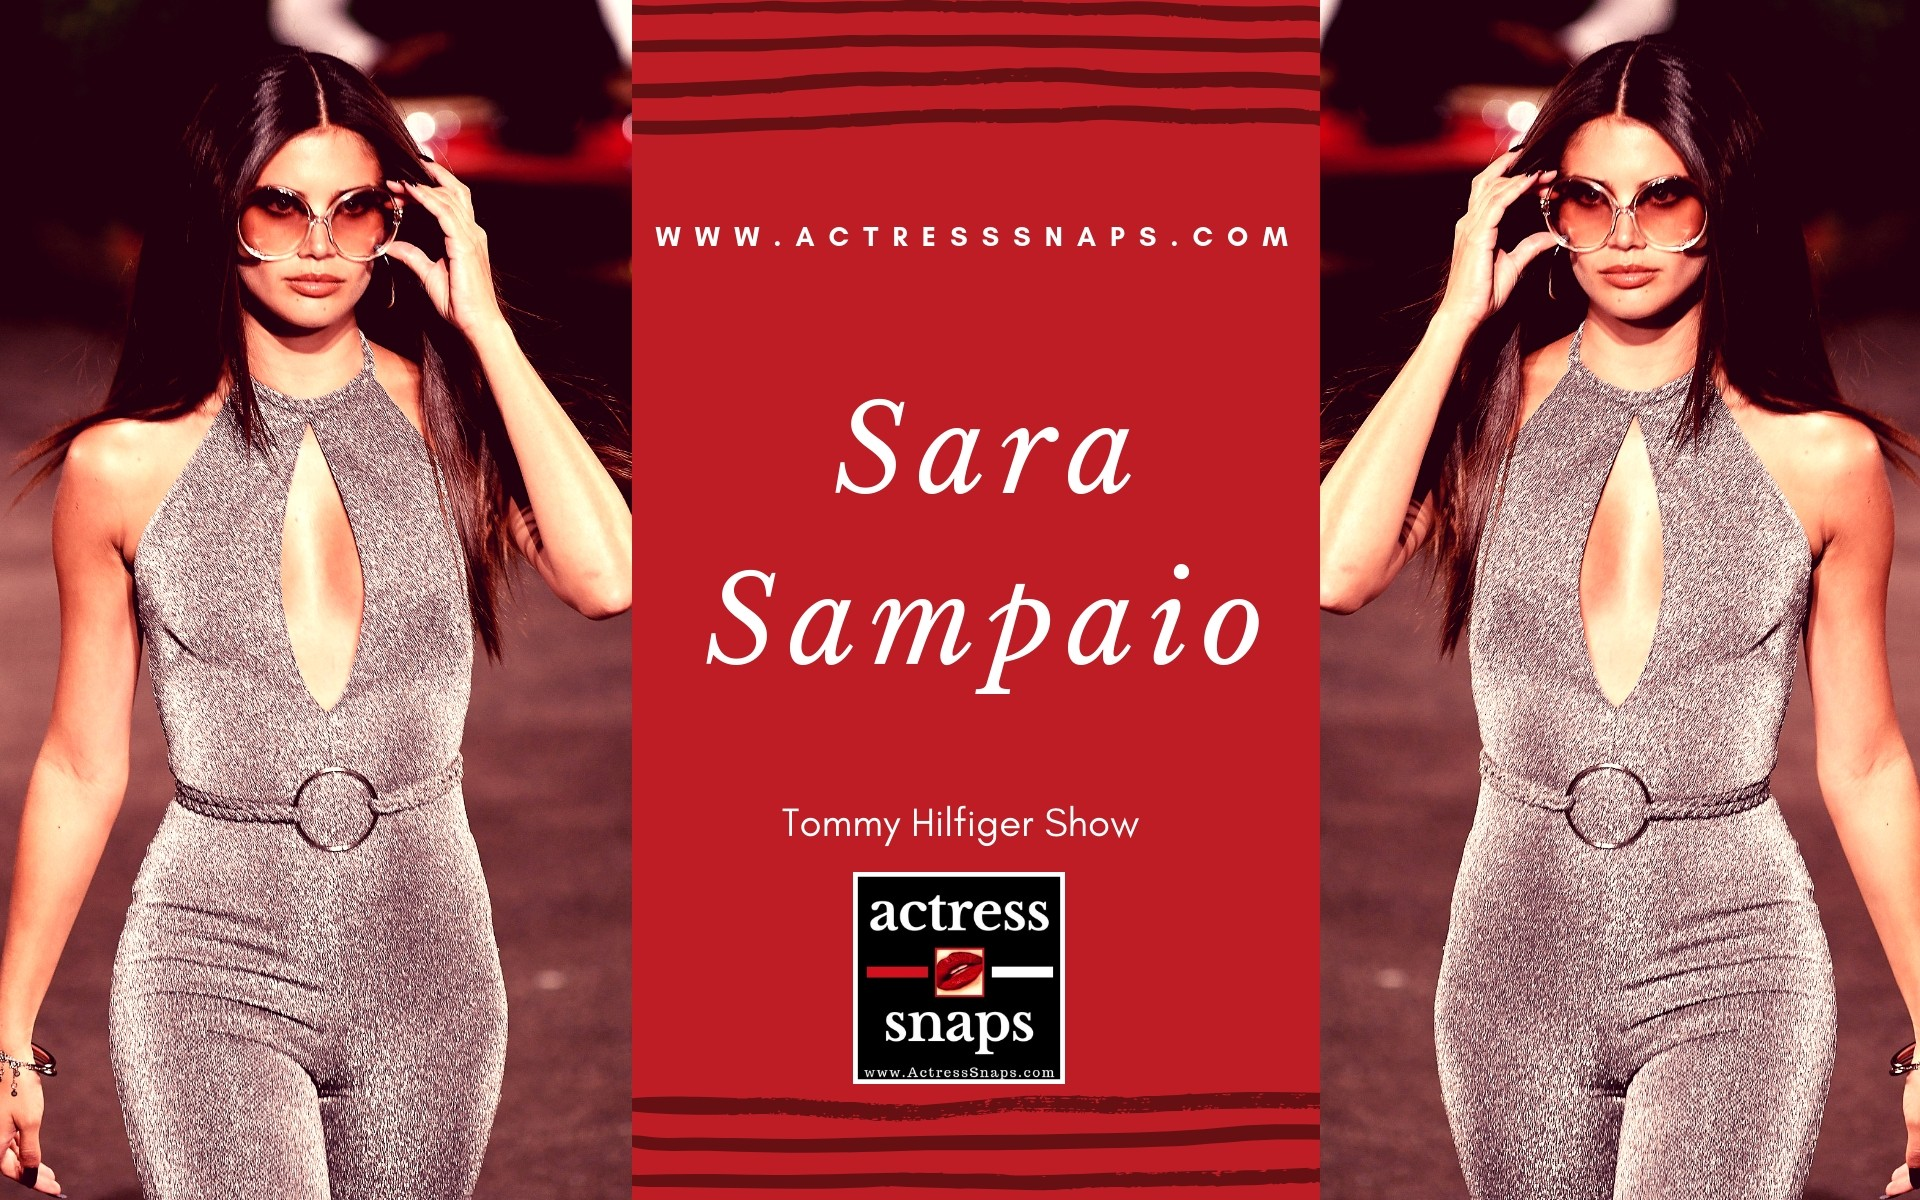 Sara Sampaio - Tommy Hilfiger Show - Sexy Actress Pictures | Hot Actress Pictures - ActressSnaps.com